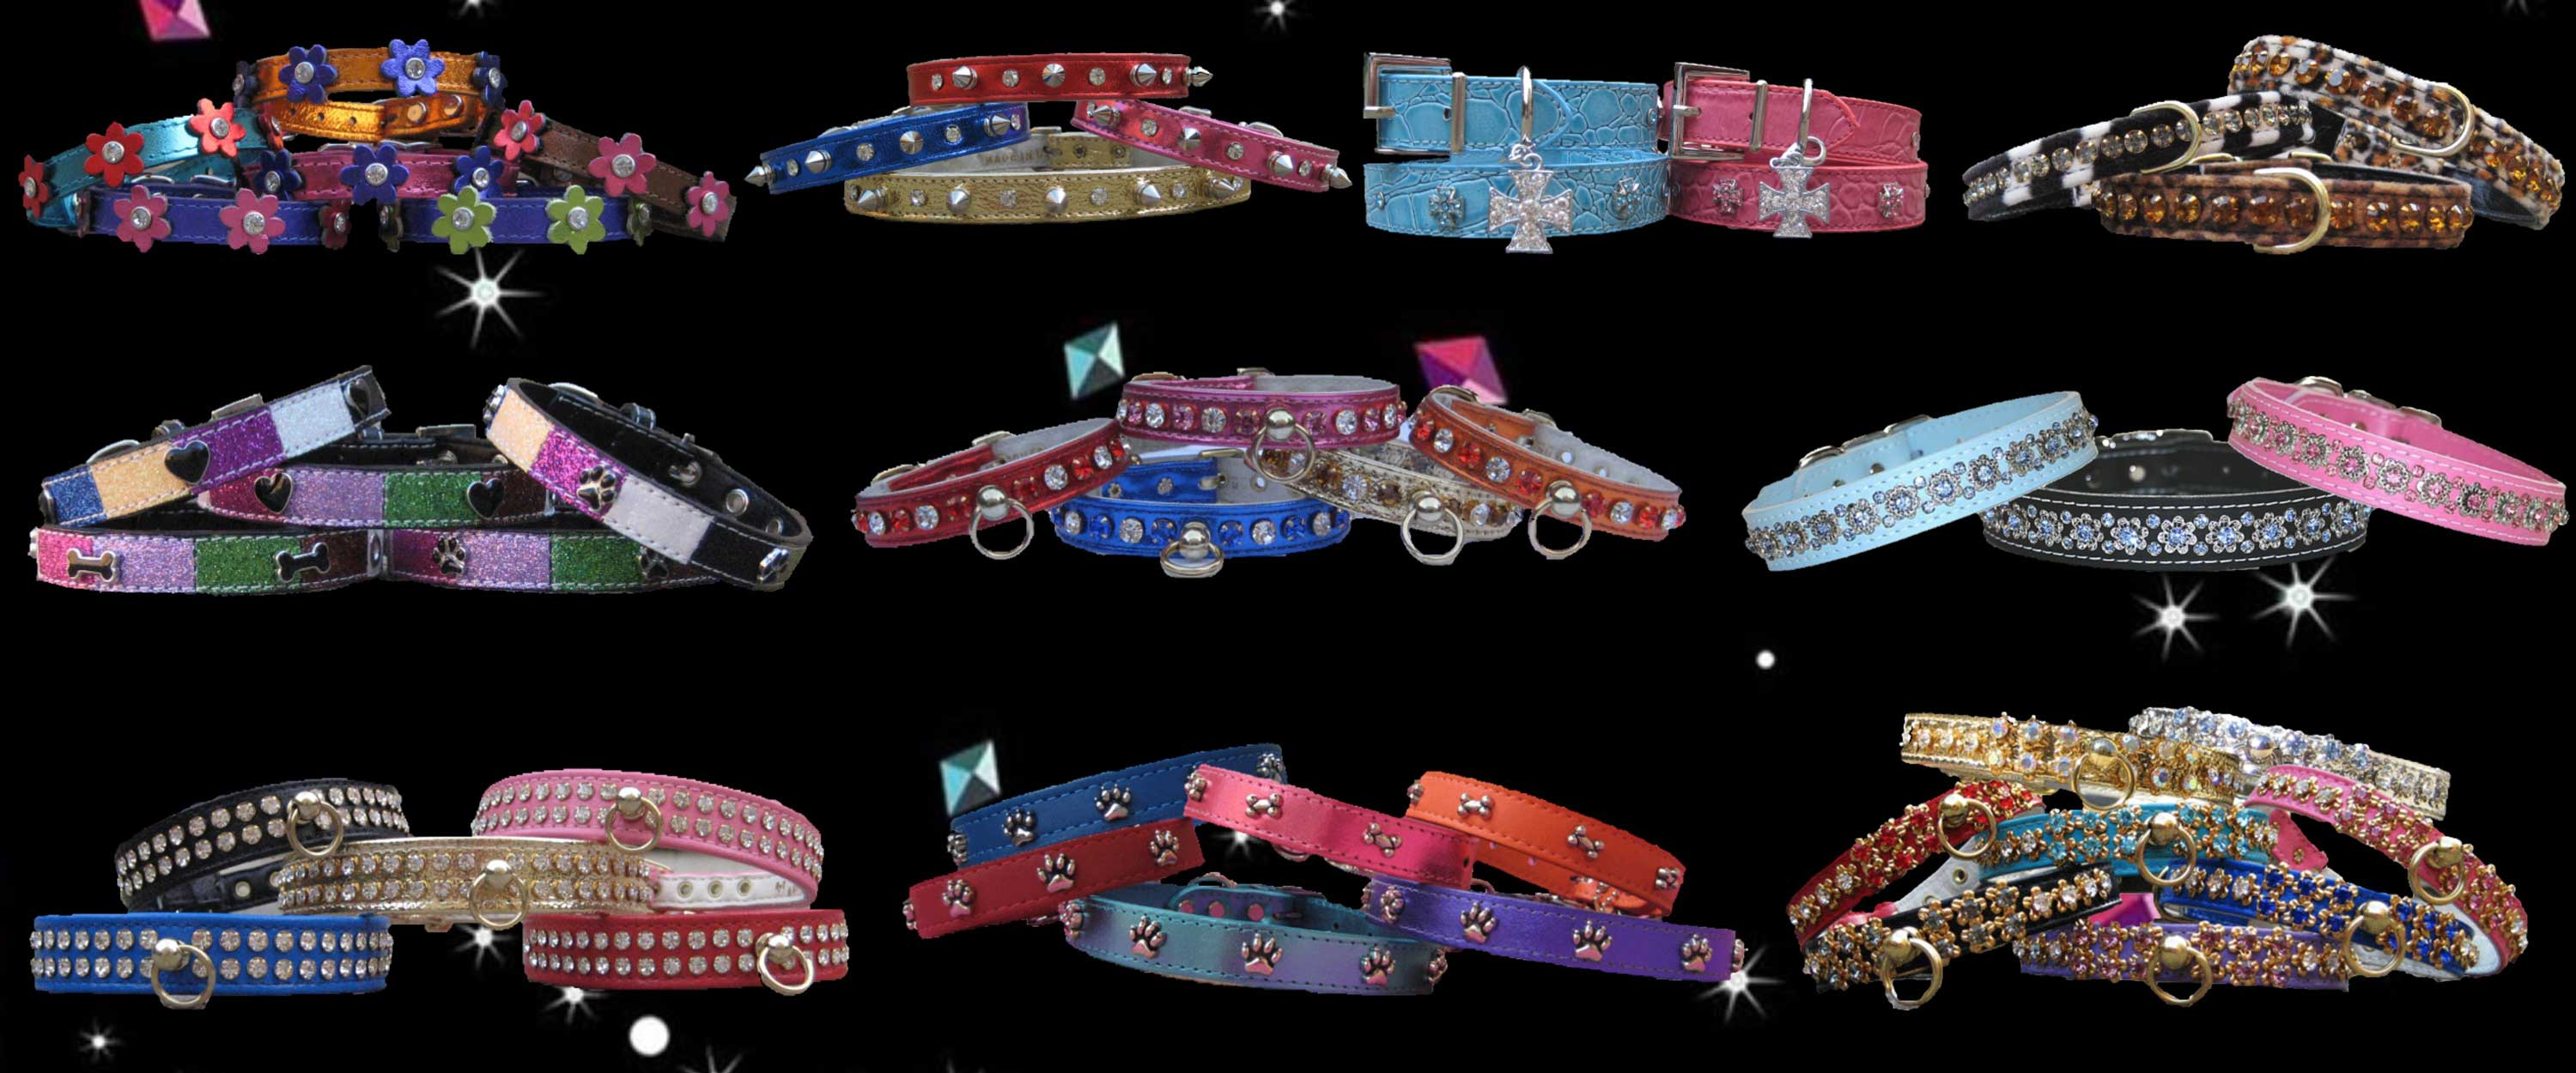 Crystal and Leather collars for dogs and cats